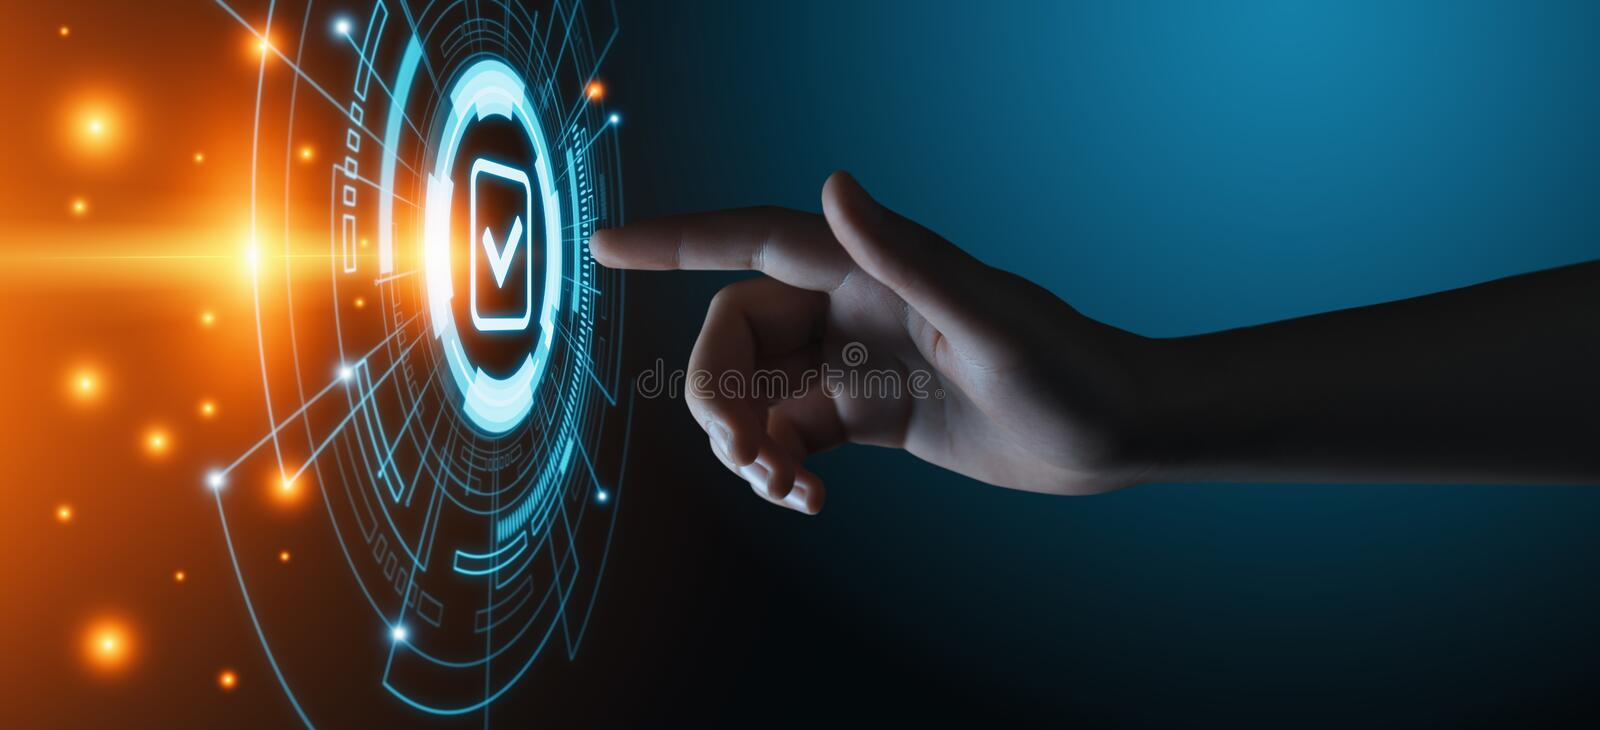 Standard Quality Control Certification Assurance Guarantee Internet Business Technology Concept stock images